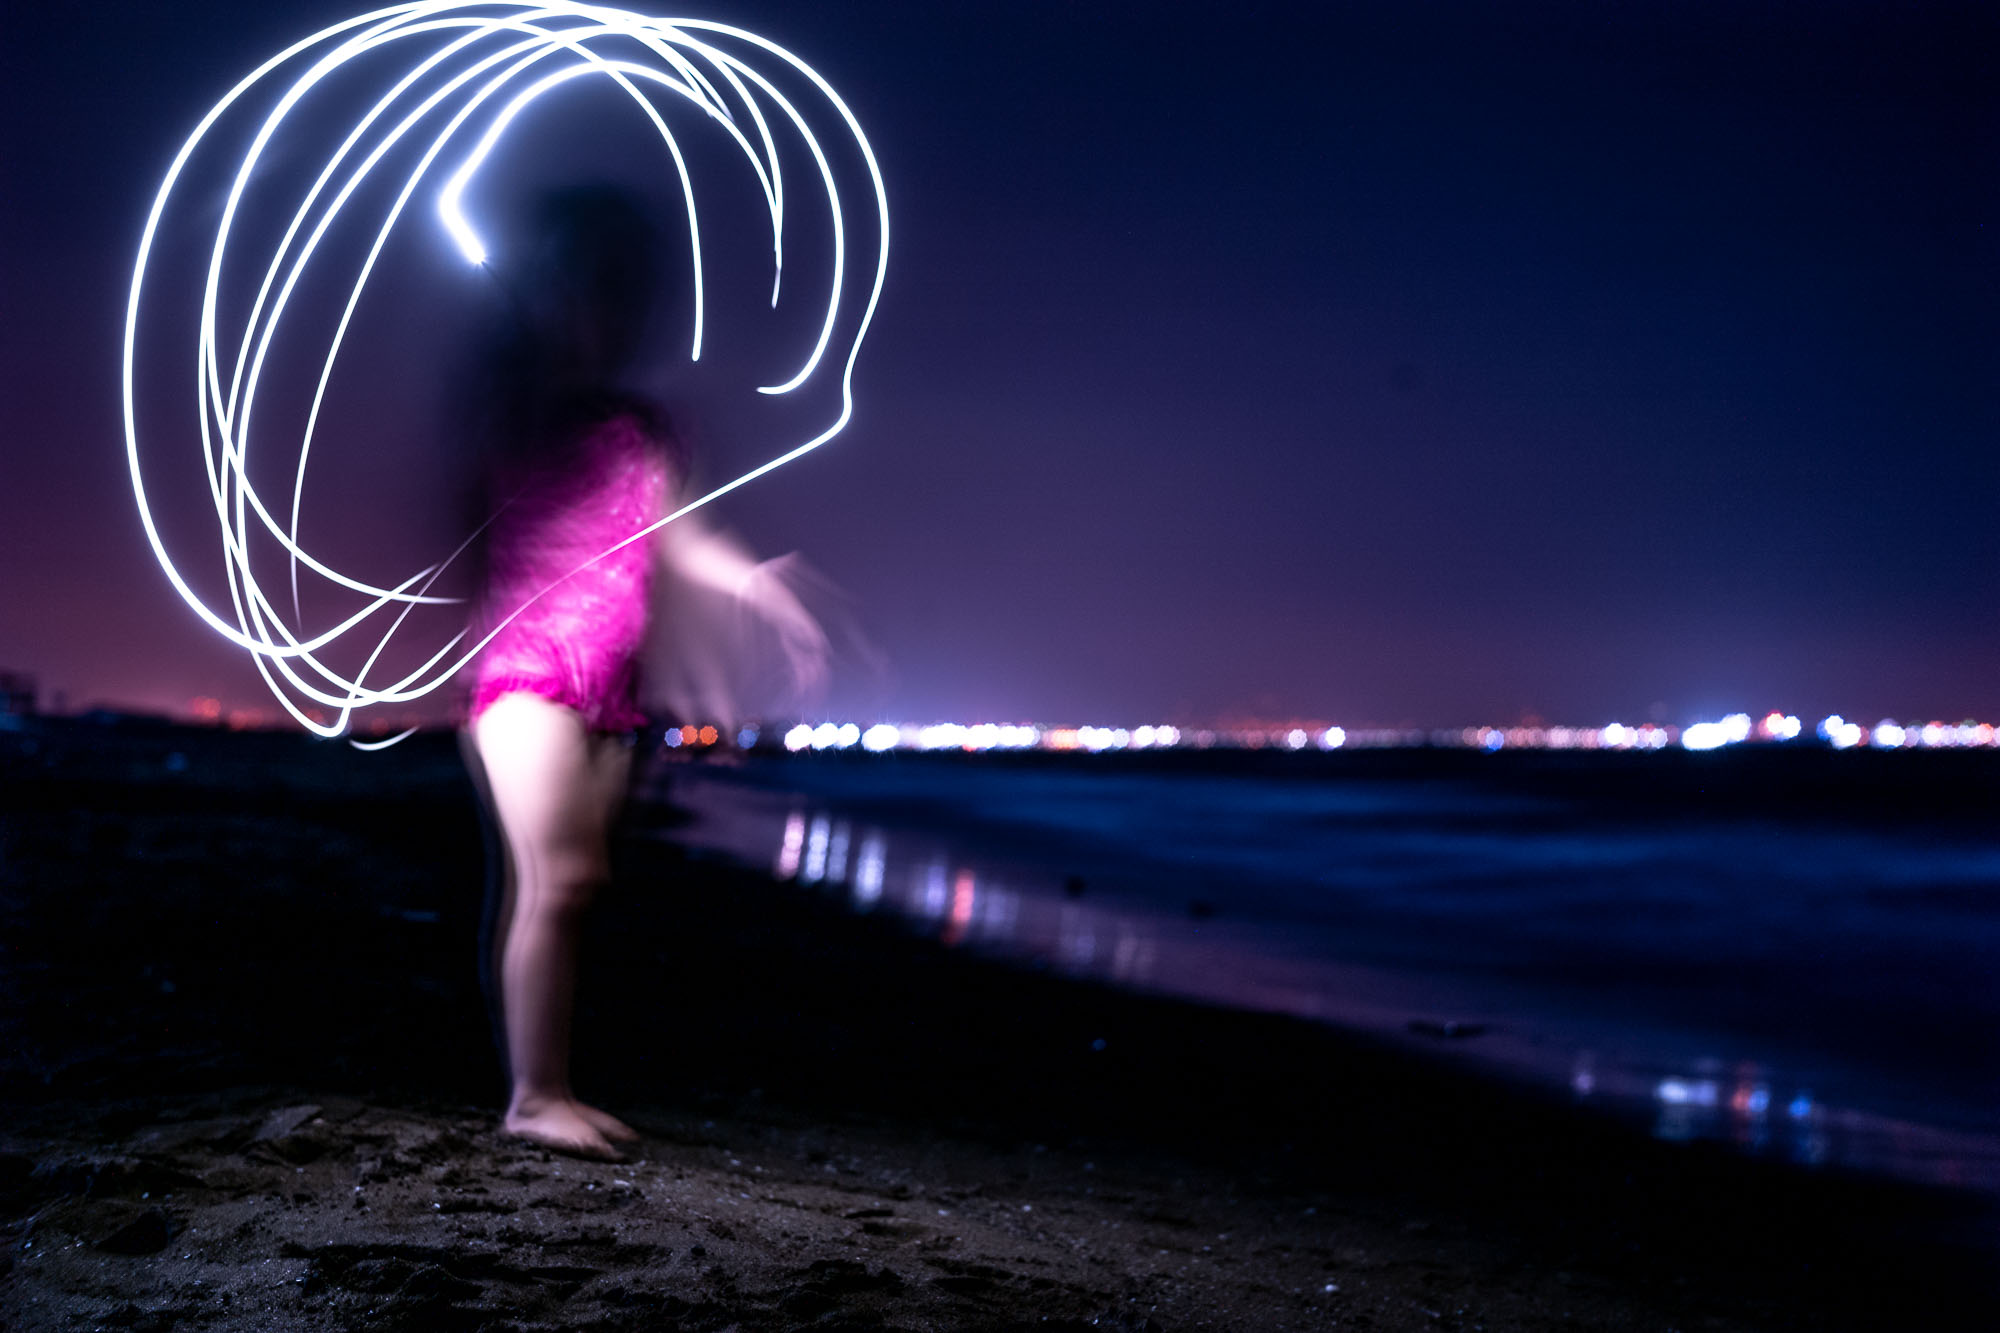 Creating streaks of light with a flash light and a long exposure